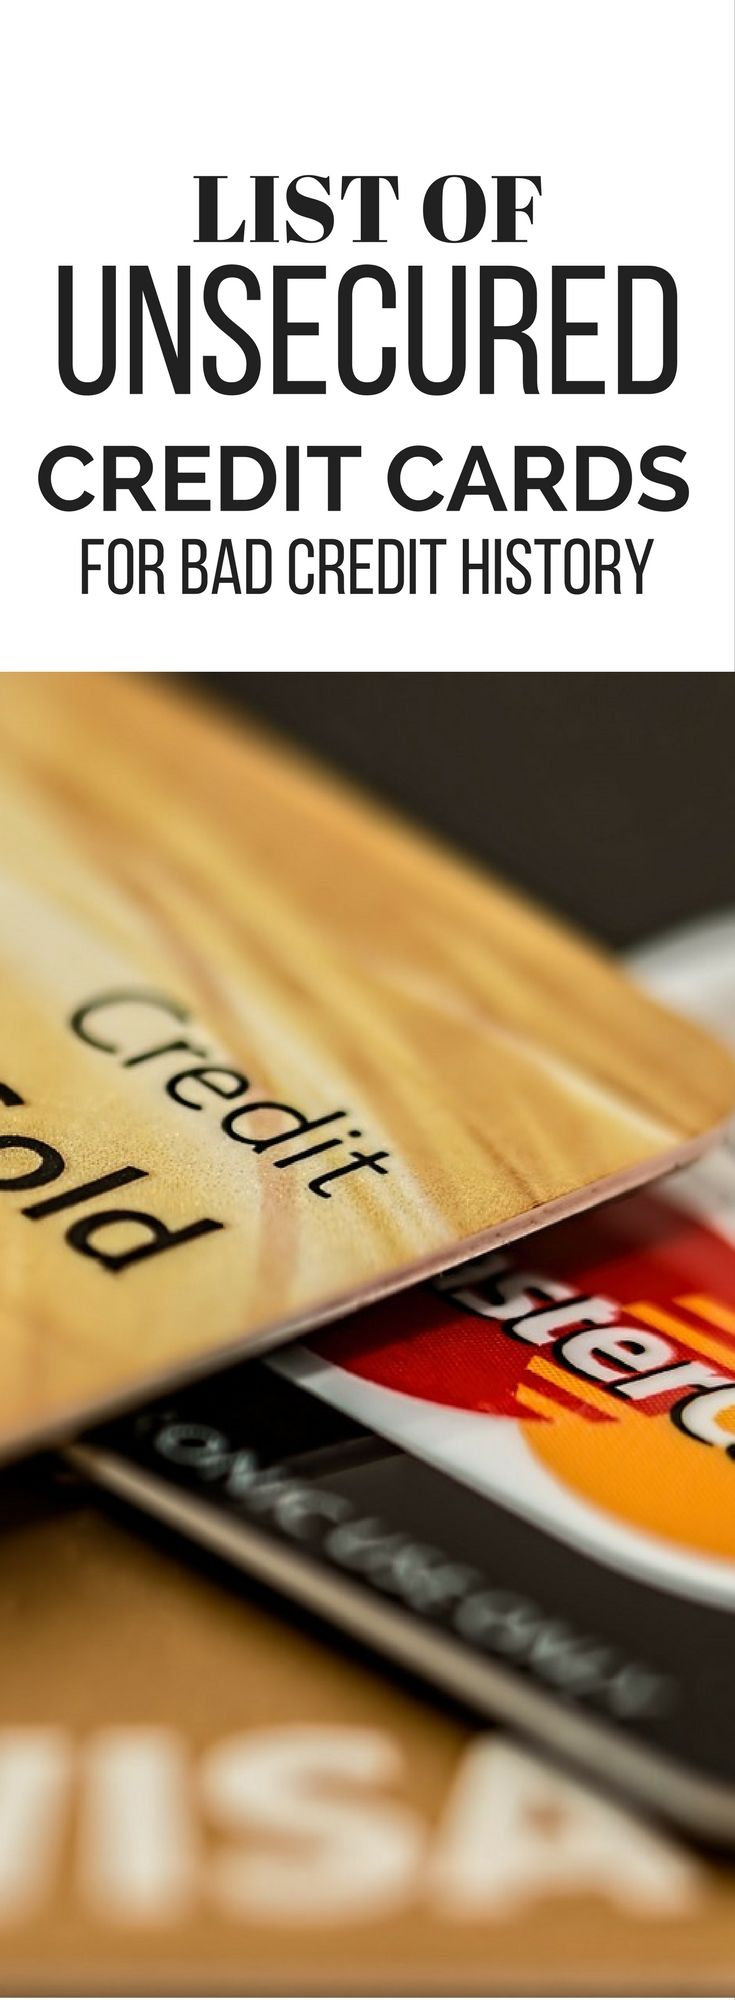 Unsecured Credit Cards for Bad Credit History